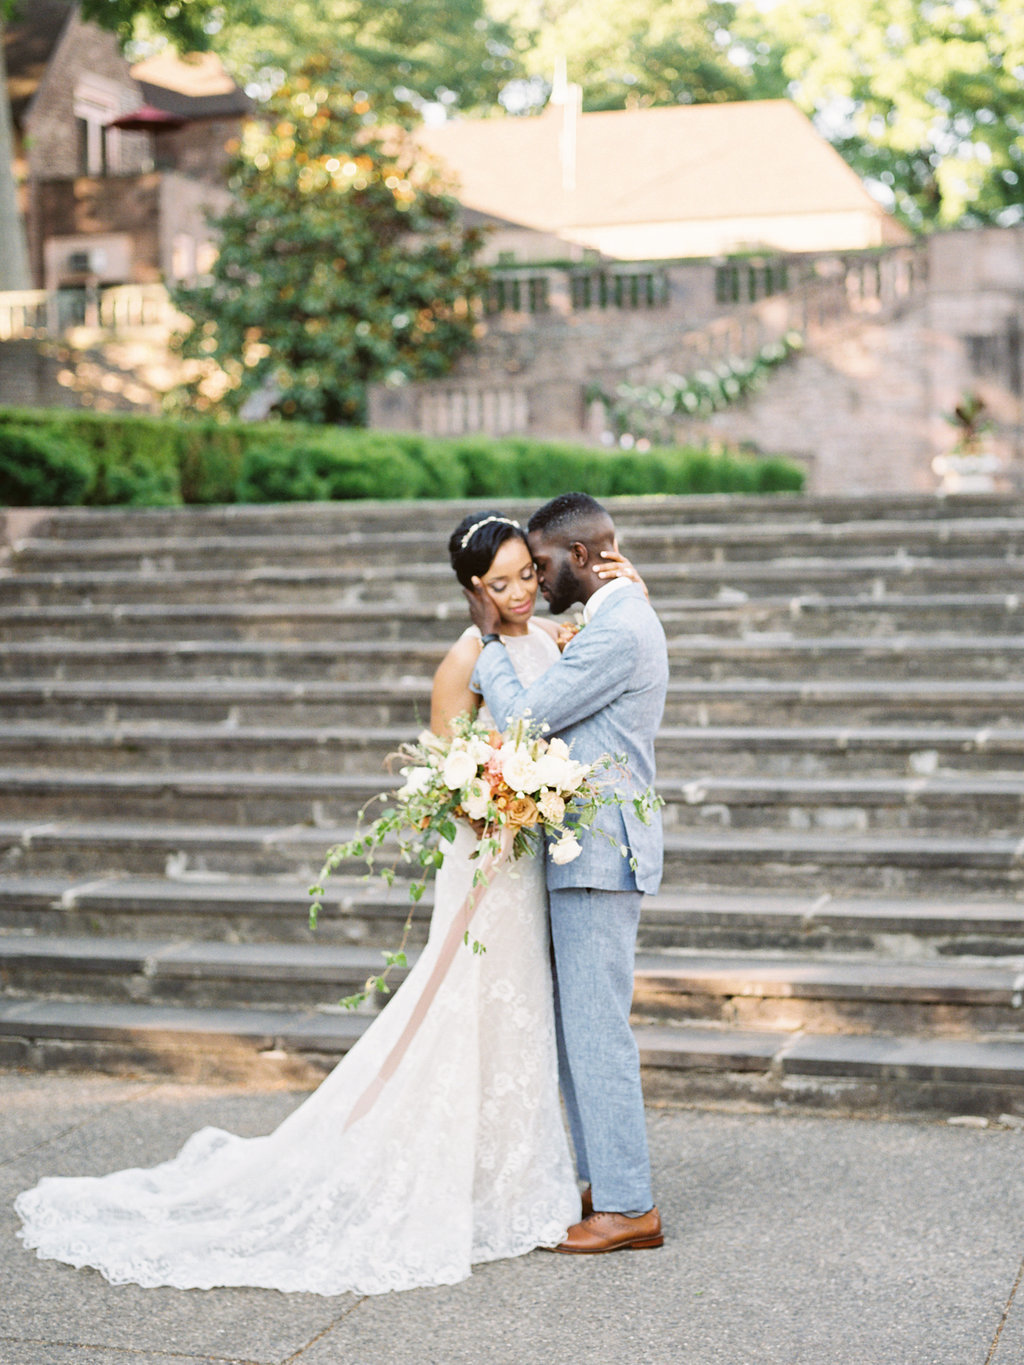 Summer Wedding Tyler Gardens Philadelphia bride groom